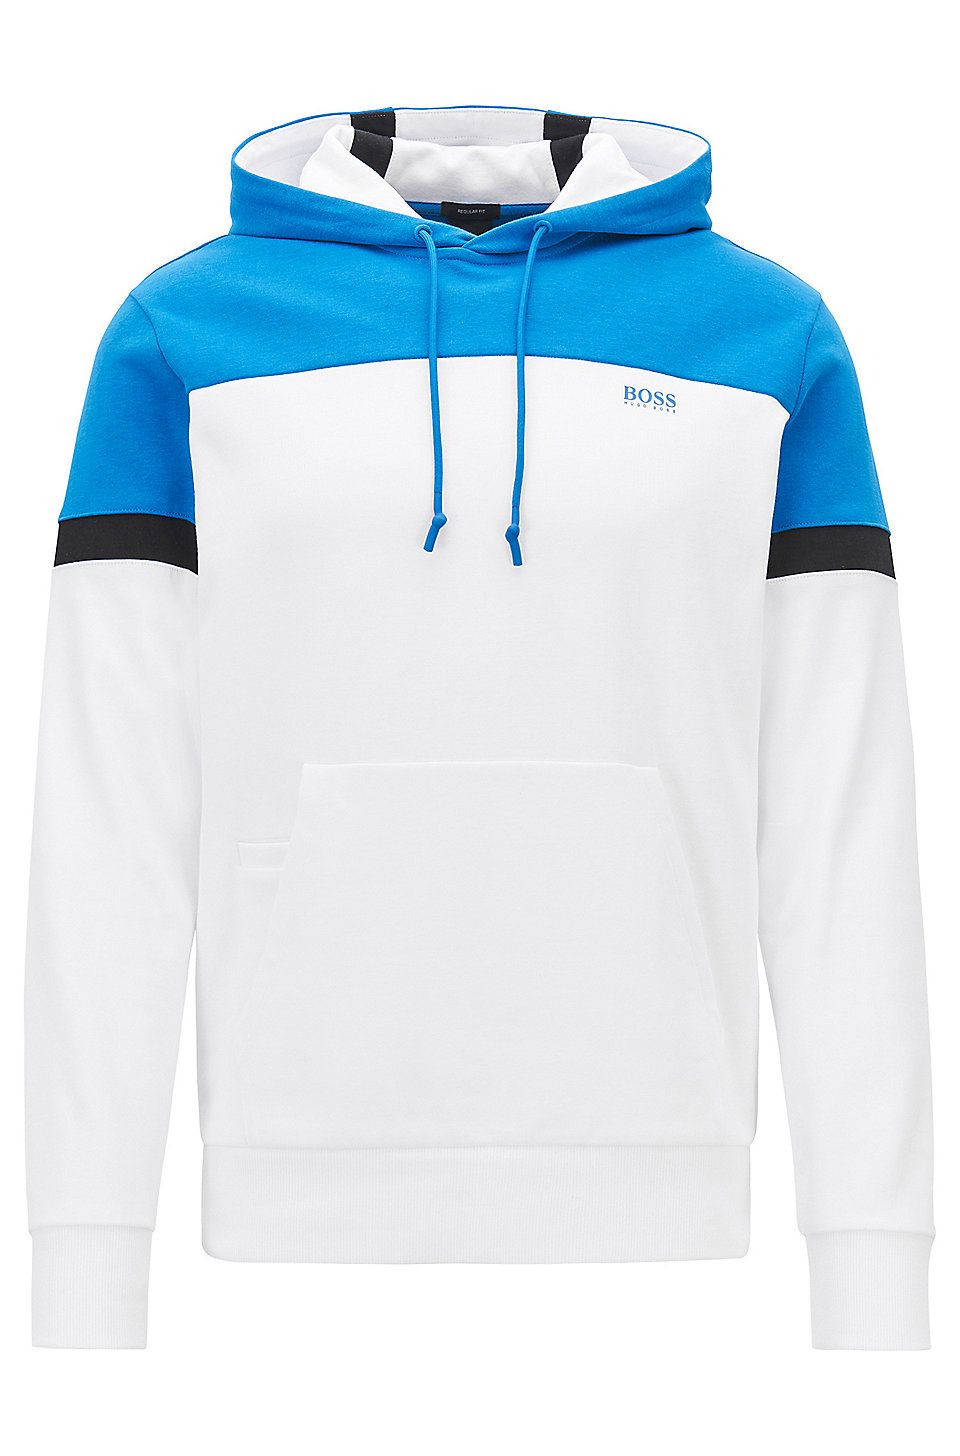 55c35bfce HUGO BOSS Colour-block hoodie in a double-faced cotton blend - White  Tracksuits from BOSS for Men in the official HUGO BOSS Online Store free  shipping